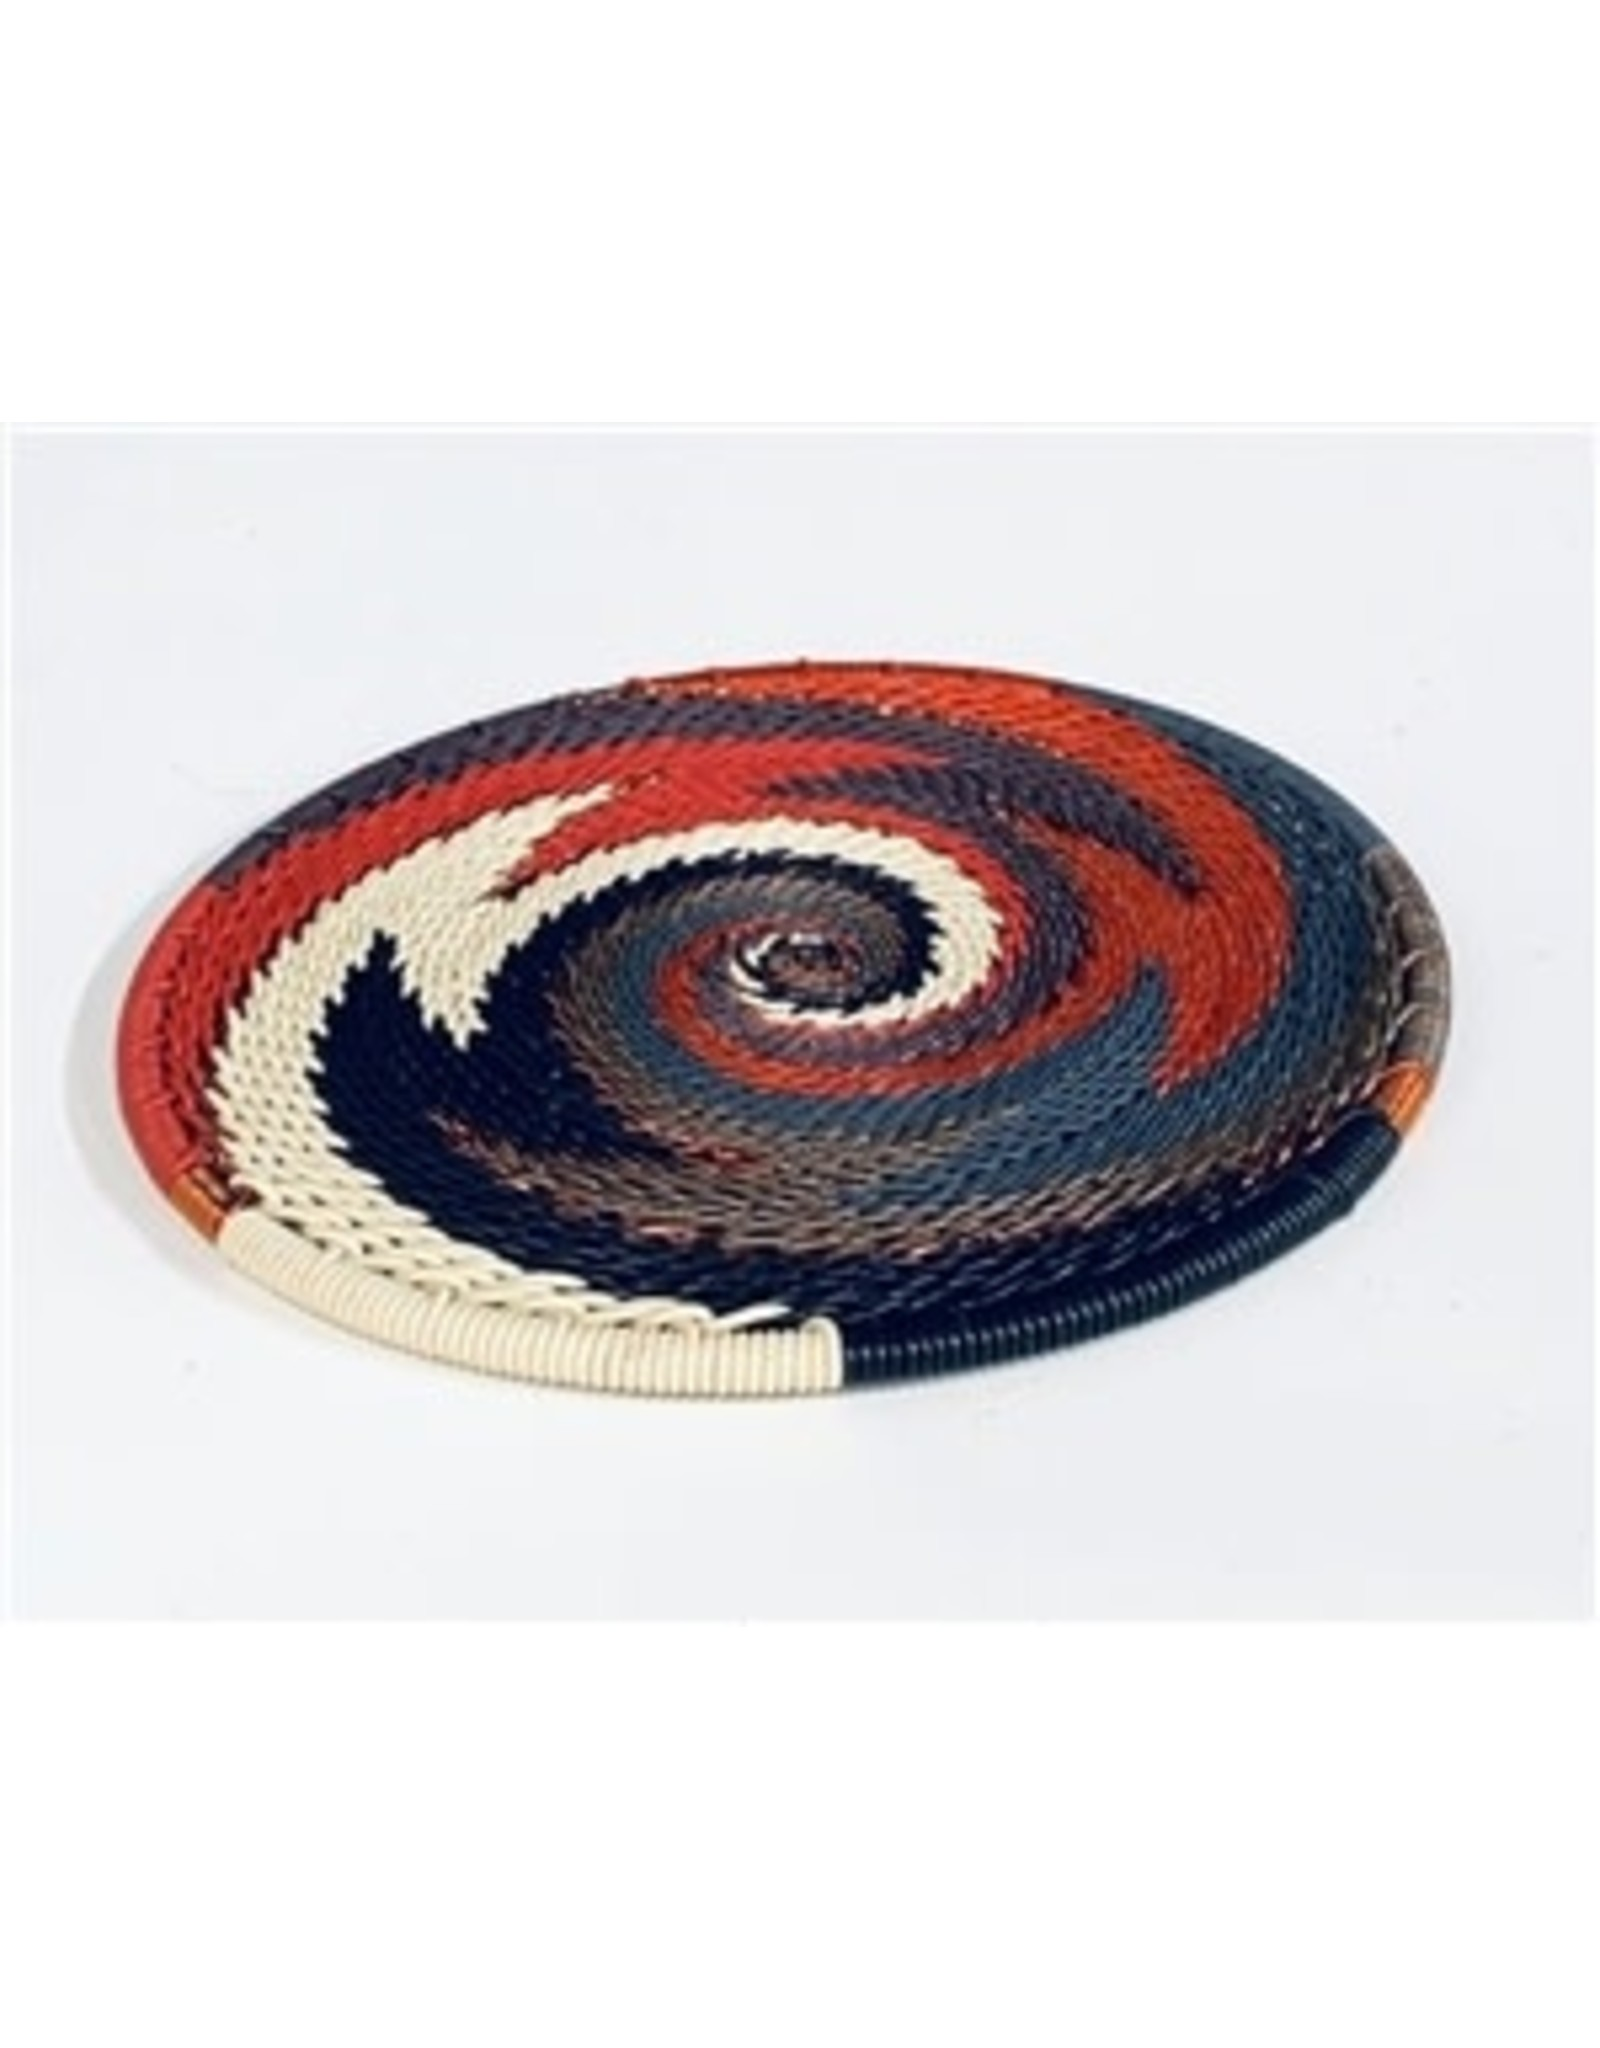 Telephone Wire Coaster, Red Pepper